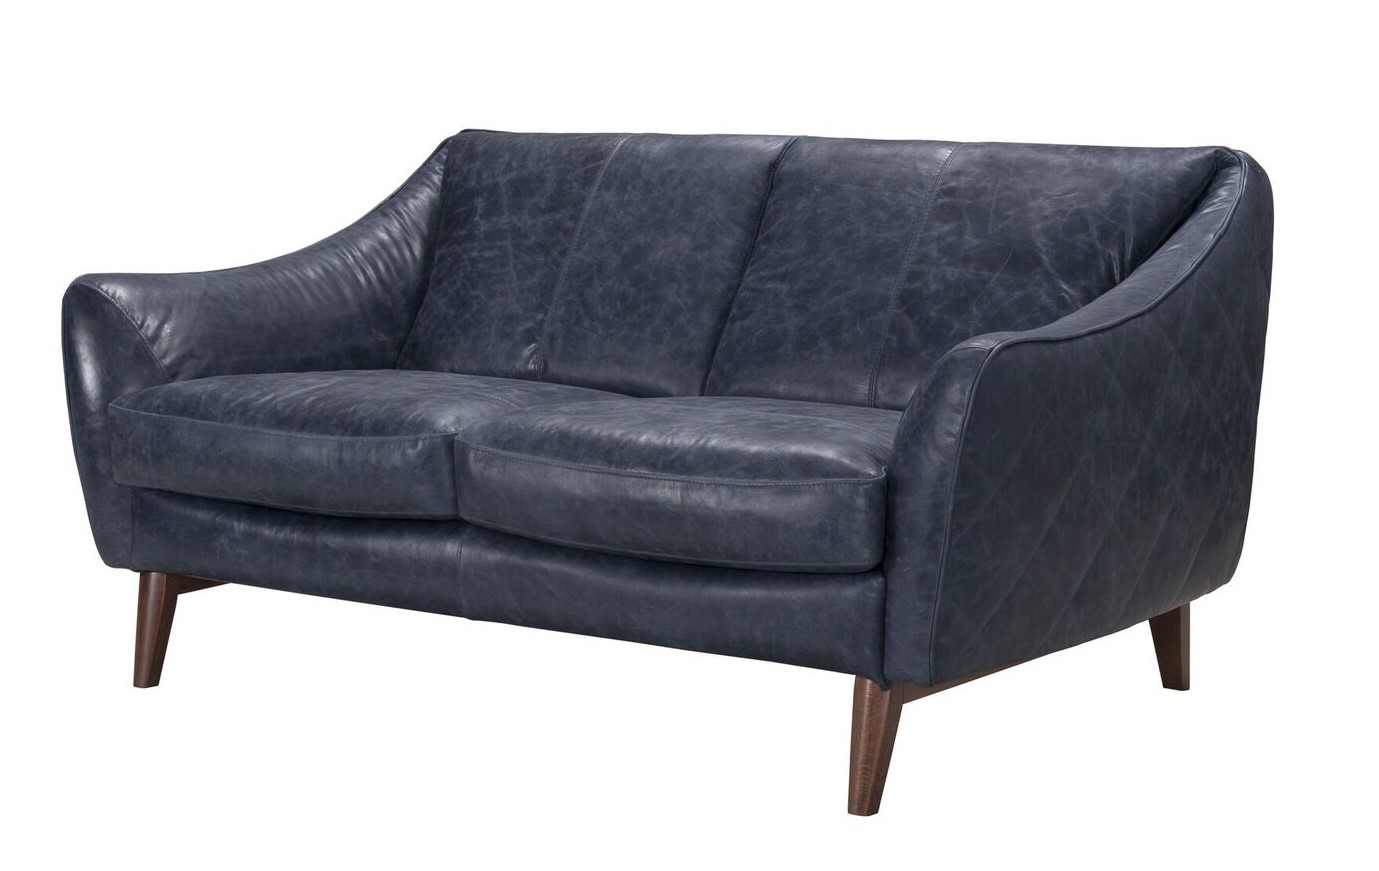 Details about Oceano Contemporary Italian Top Grain Genuine Leather  Loveseat Blue w/ Quilted S